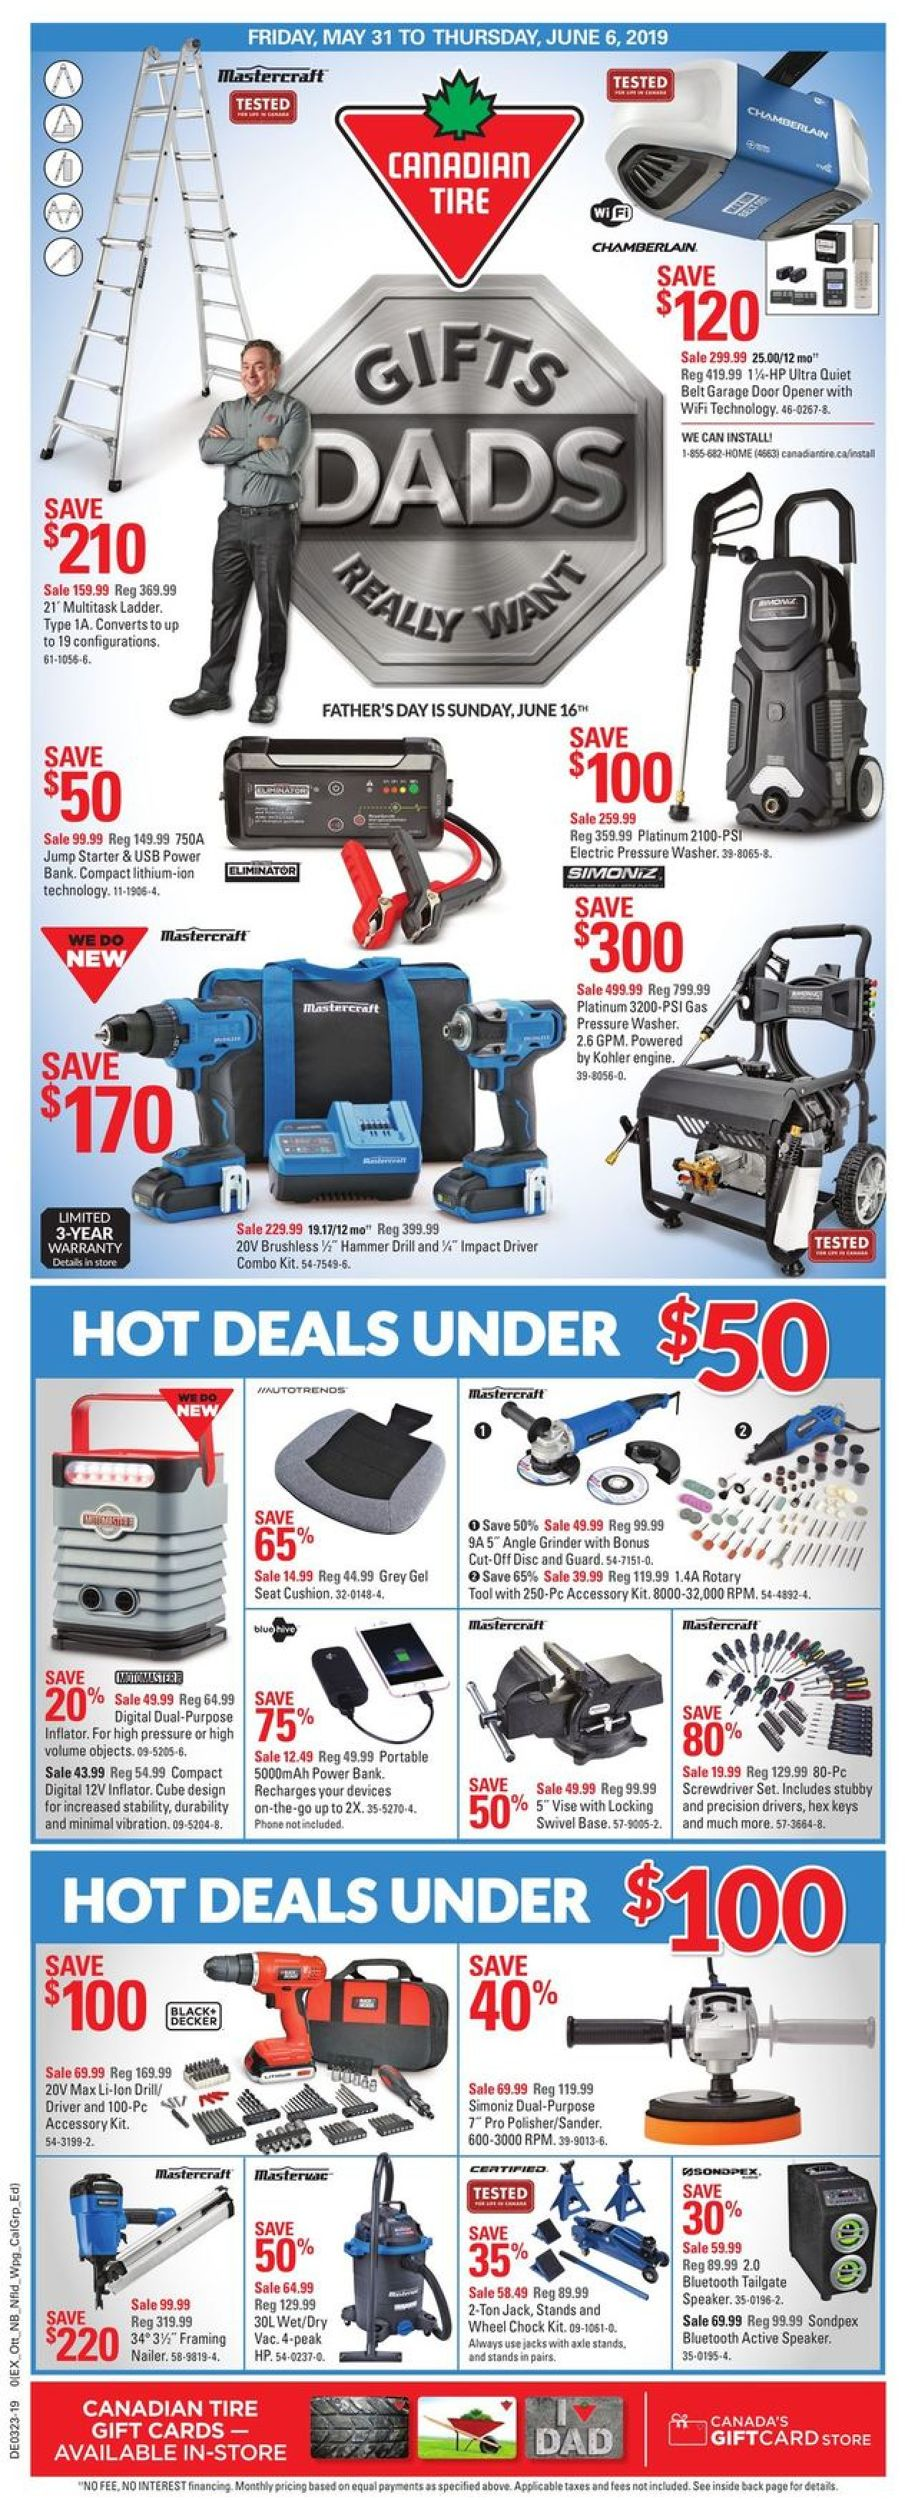 Canadian Tire Flyer - 05/31-06/06/2019